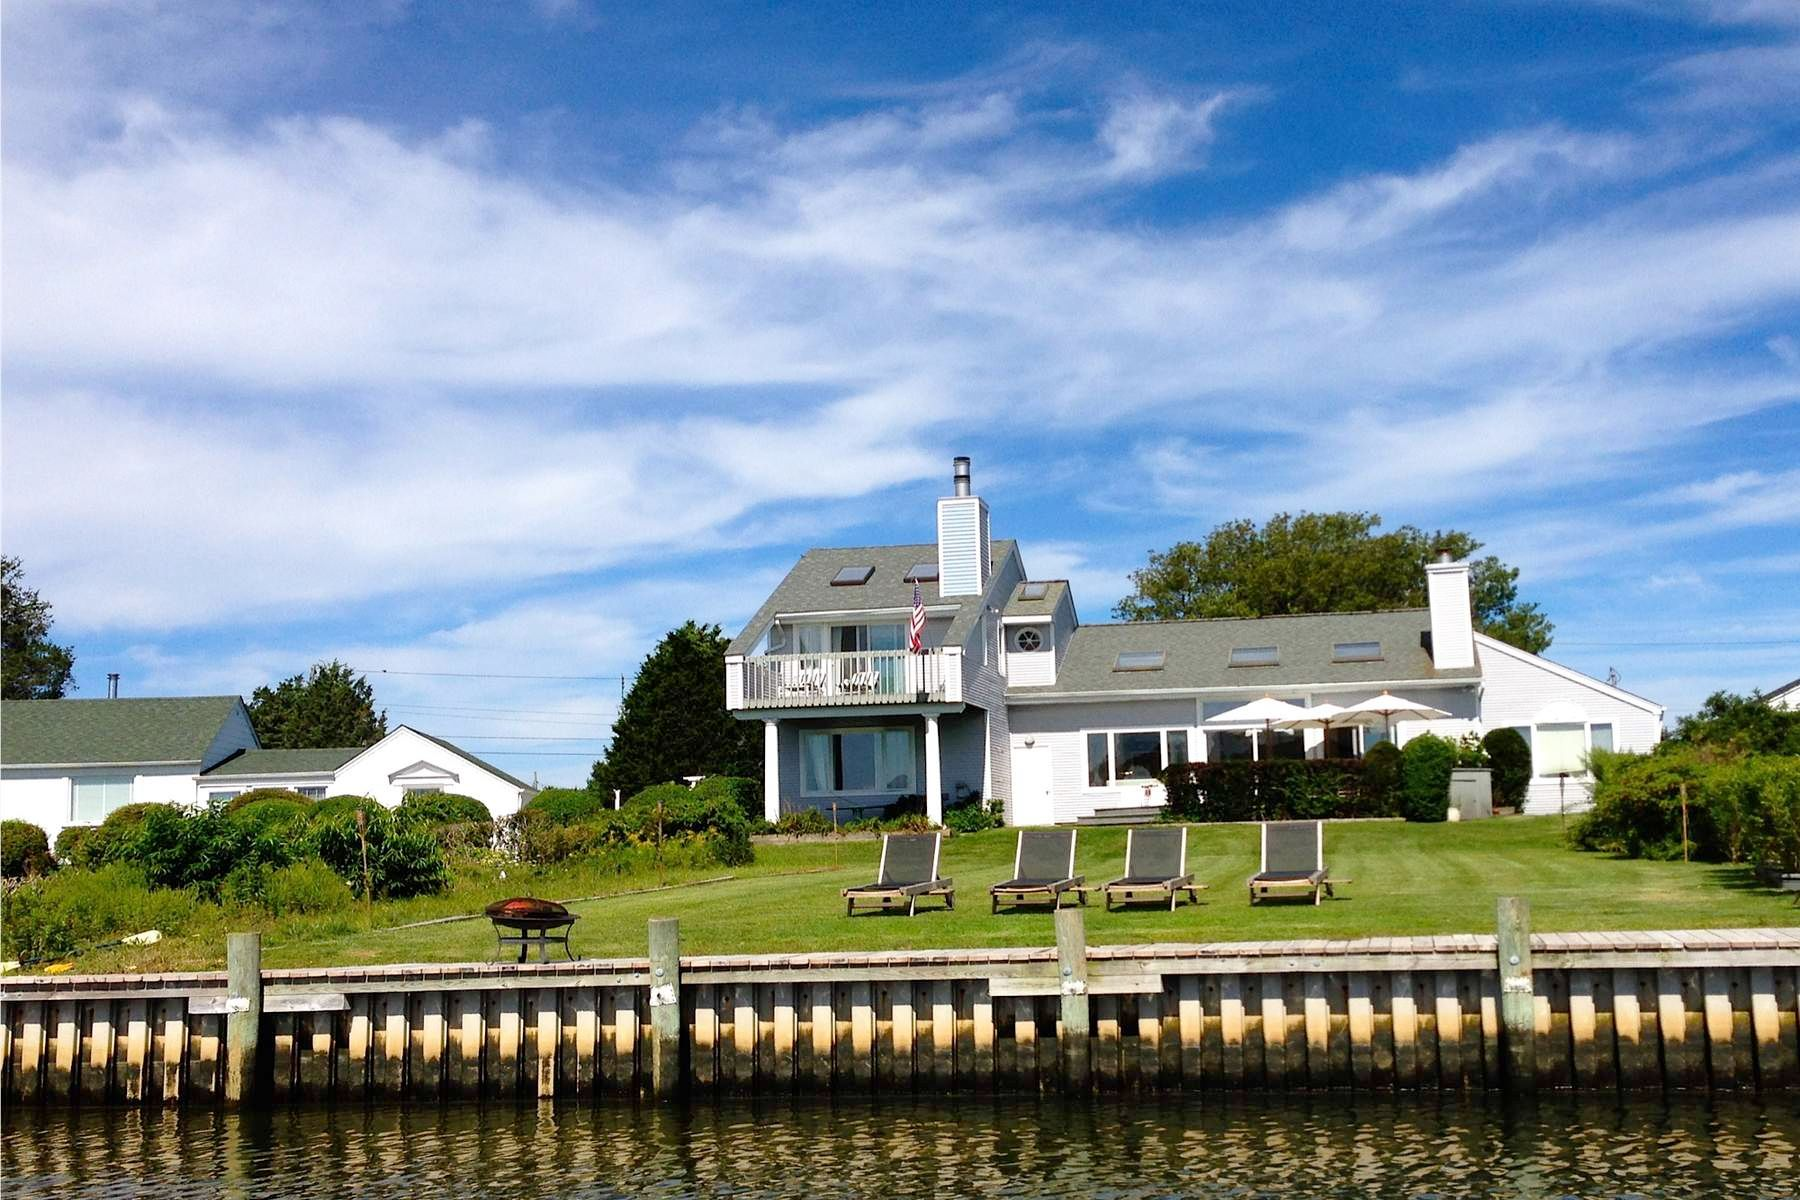 Single Family Home for Rent at Waterfront Contemporary 28 Old Fort Ln Southampton, New York 11968 United States